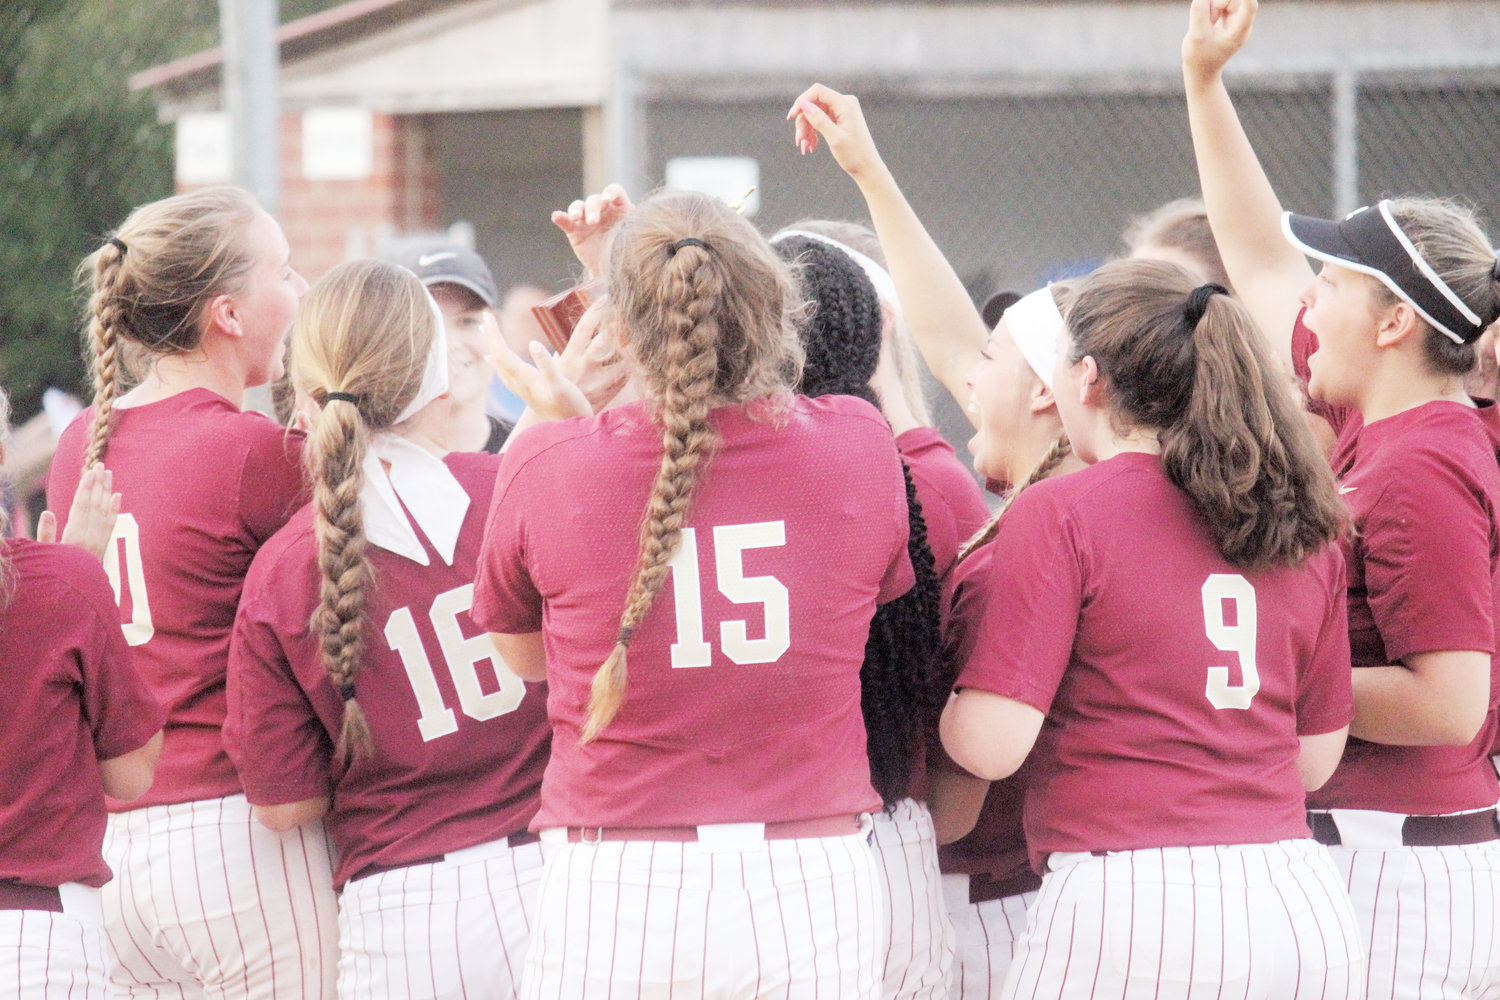 Harnett Central softball players celebrate after winning the Tri-County Conference Tournament earlier this season. The Trojans advanced to third round of the NCHSAA 3A playoffs and will play at D.H. Conley on Tuesday.